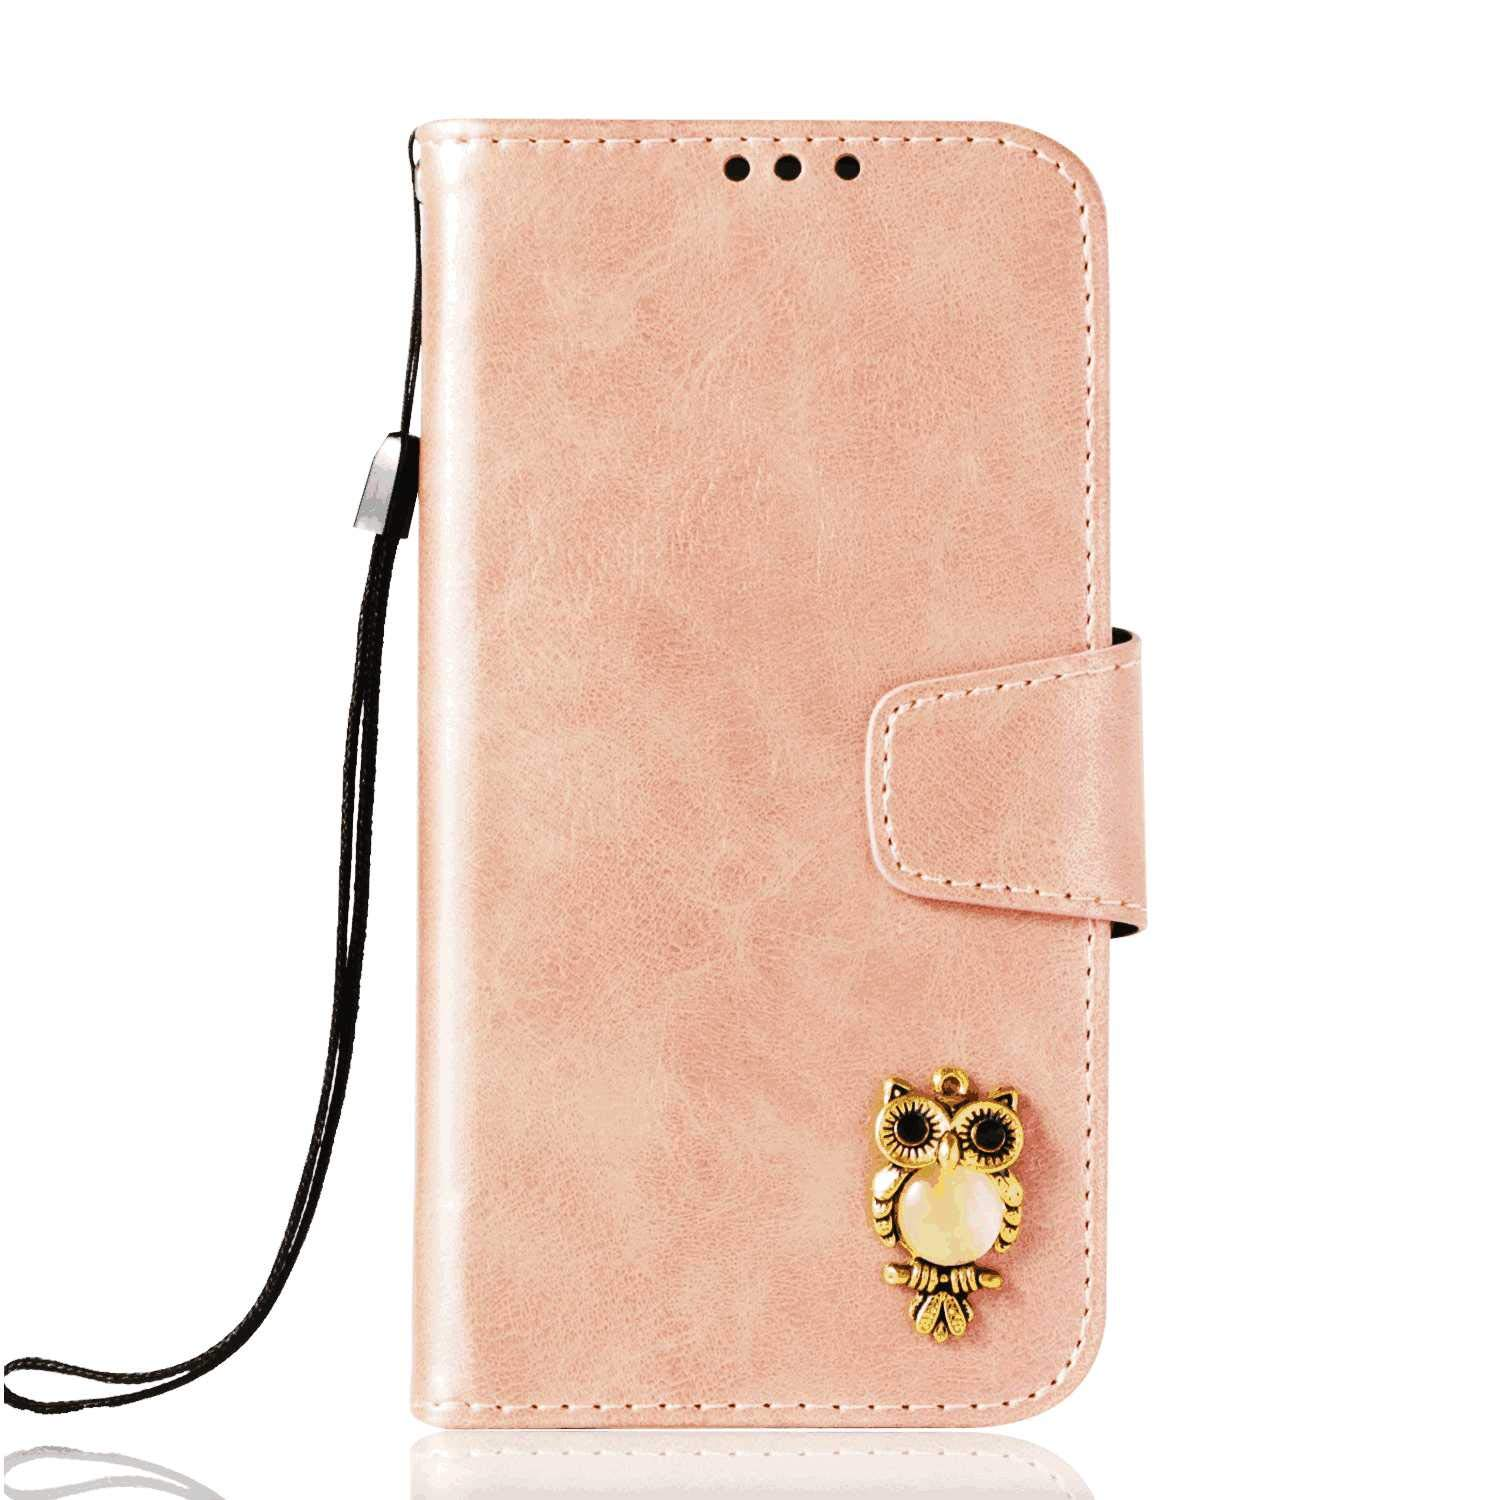 iPhone 8 Plus Flip Case Cover for iPhone 8 Plus Leather Kickstand Cell Phone case Extra-Shockproof Business Card Holders with Free Waterproof-Bag White4